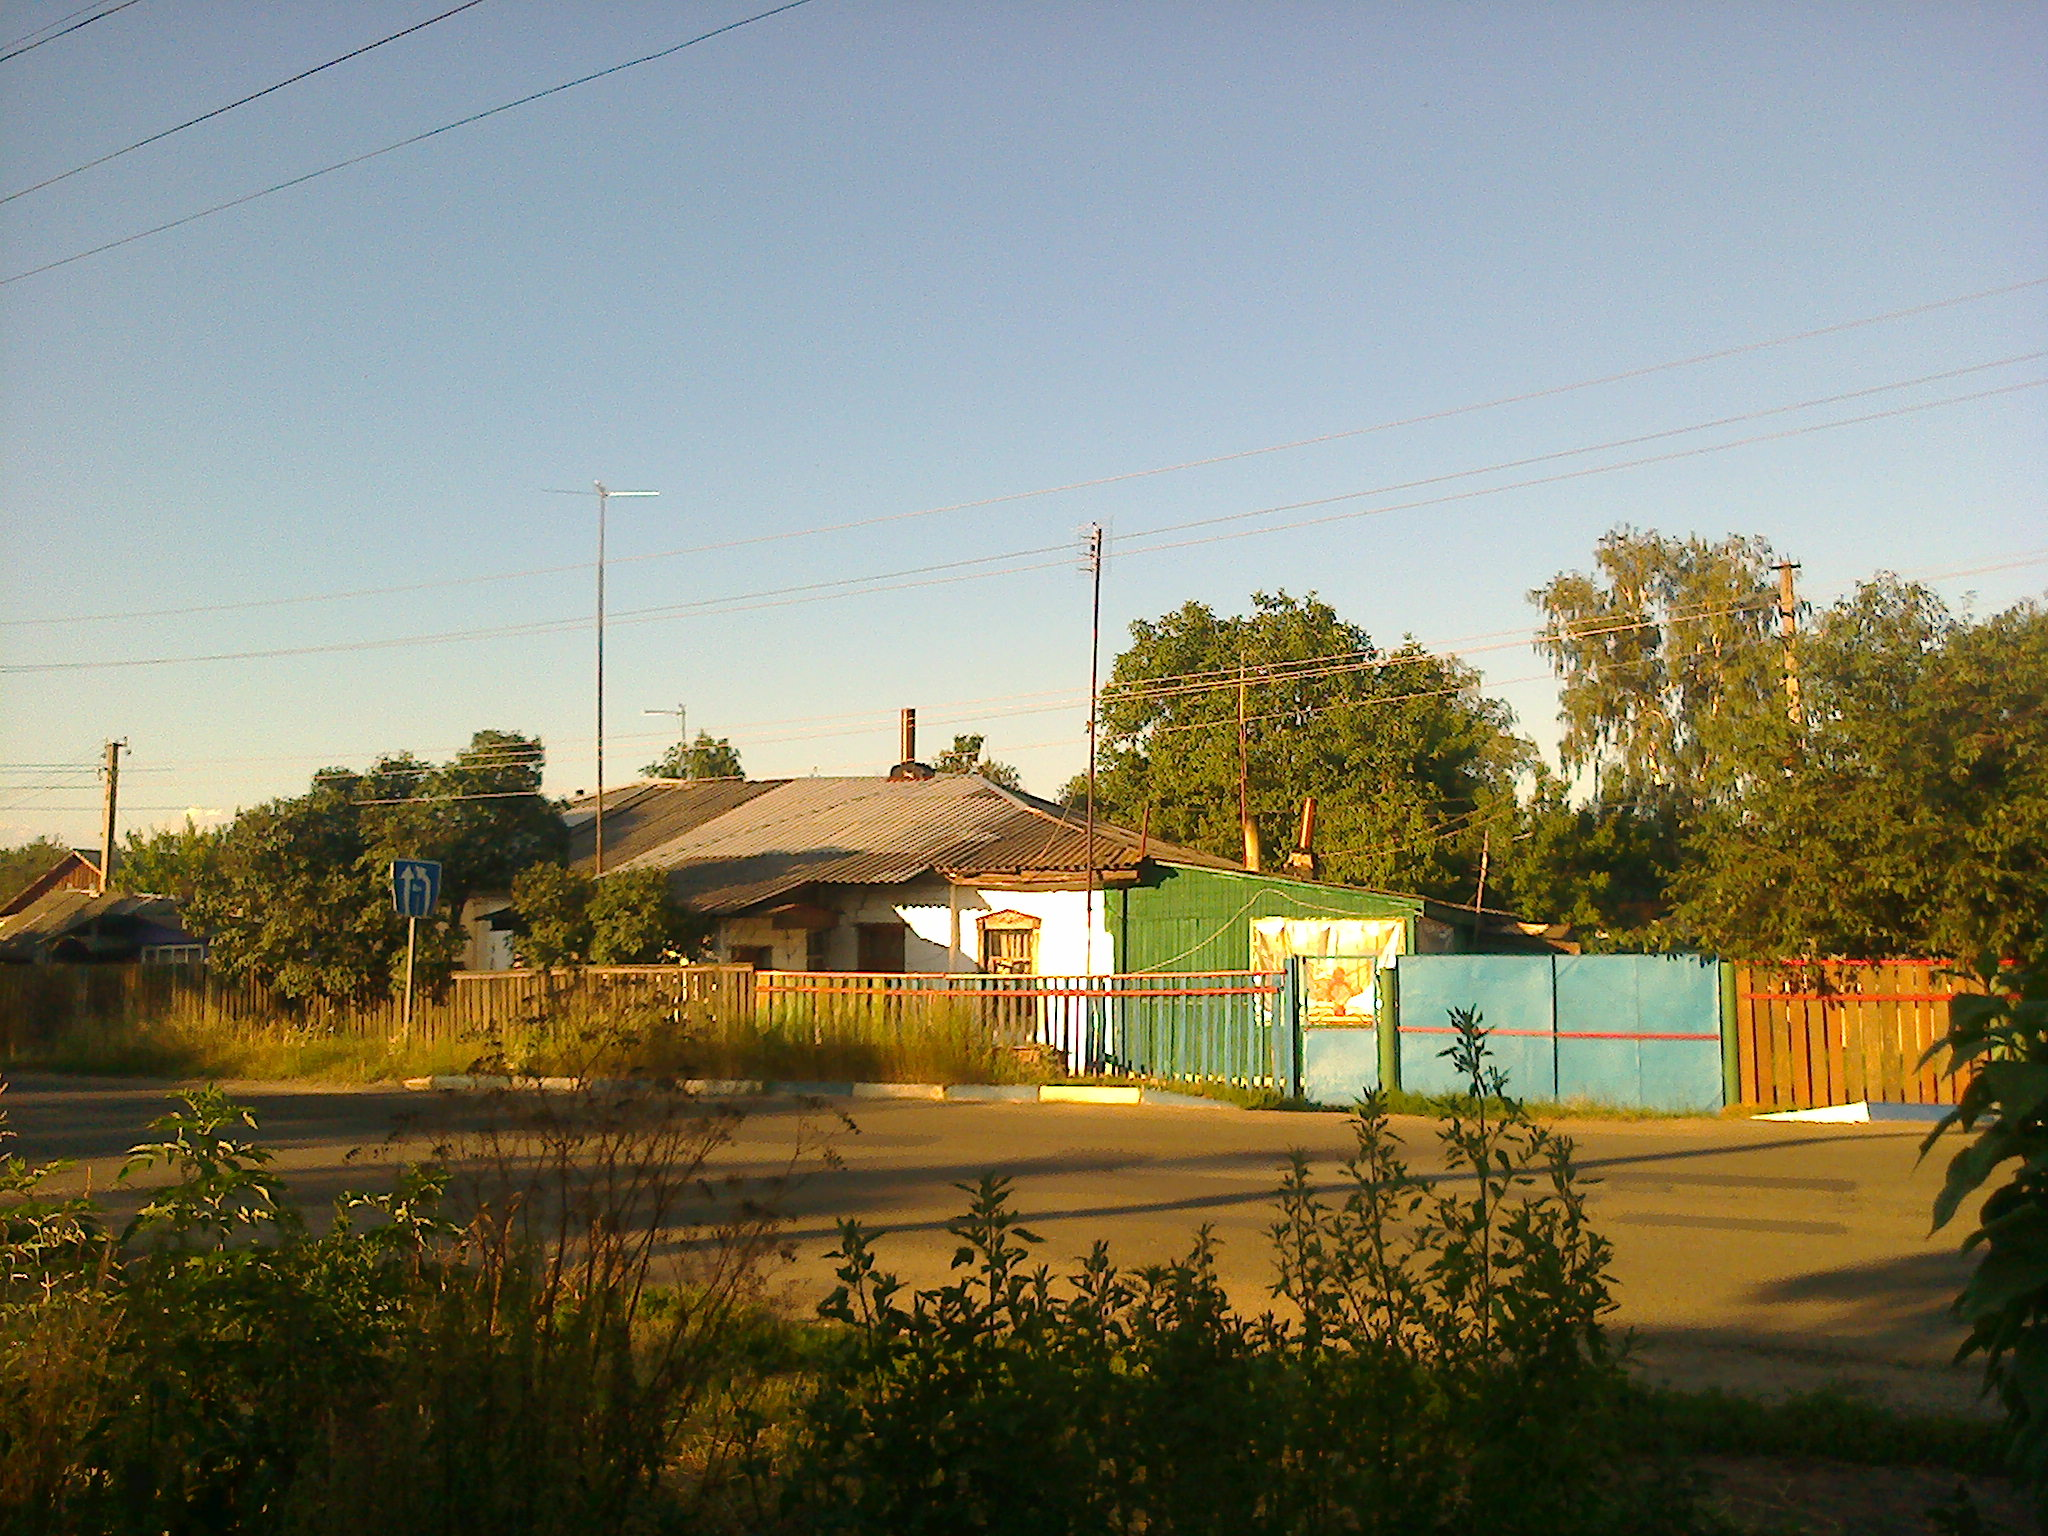 Last Jewsih house near Bobrovitsya railway station